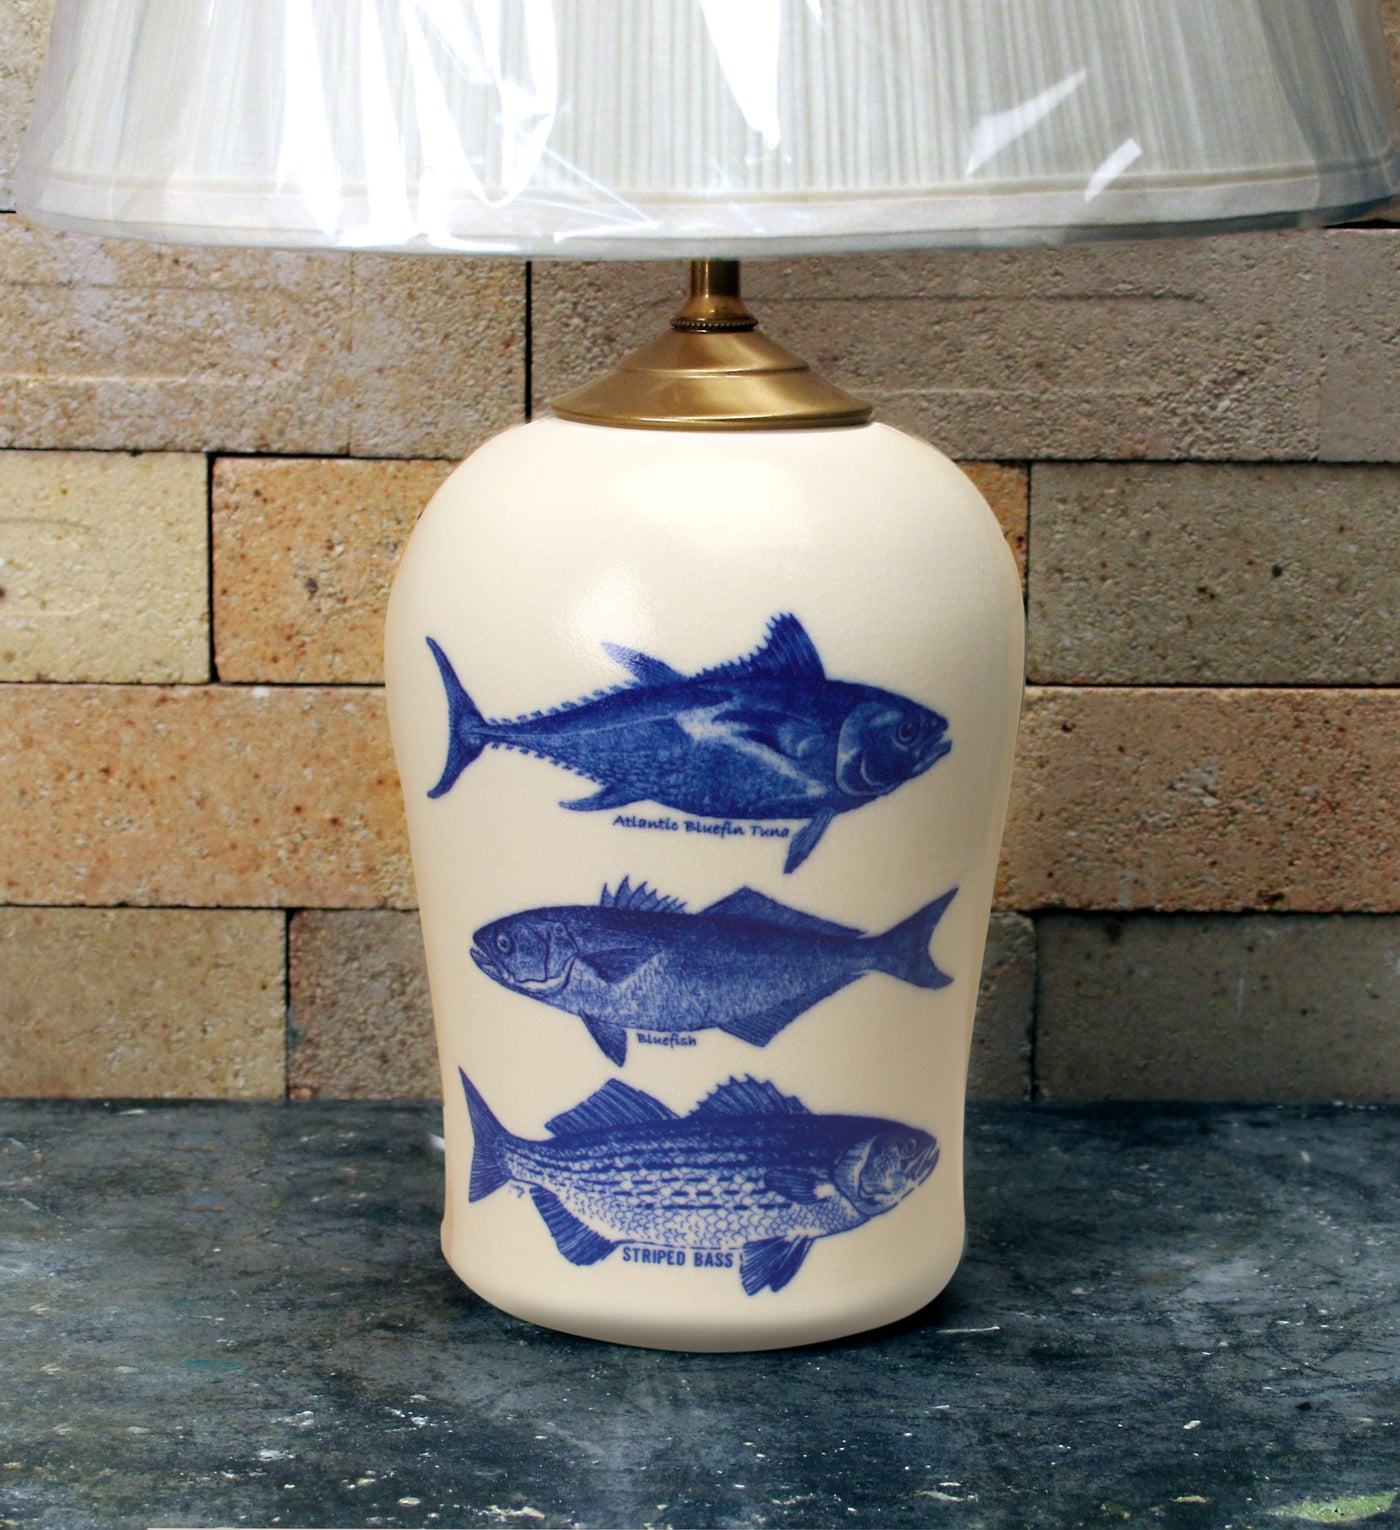 In-Glaze Decal Fish Lamp